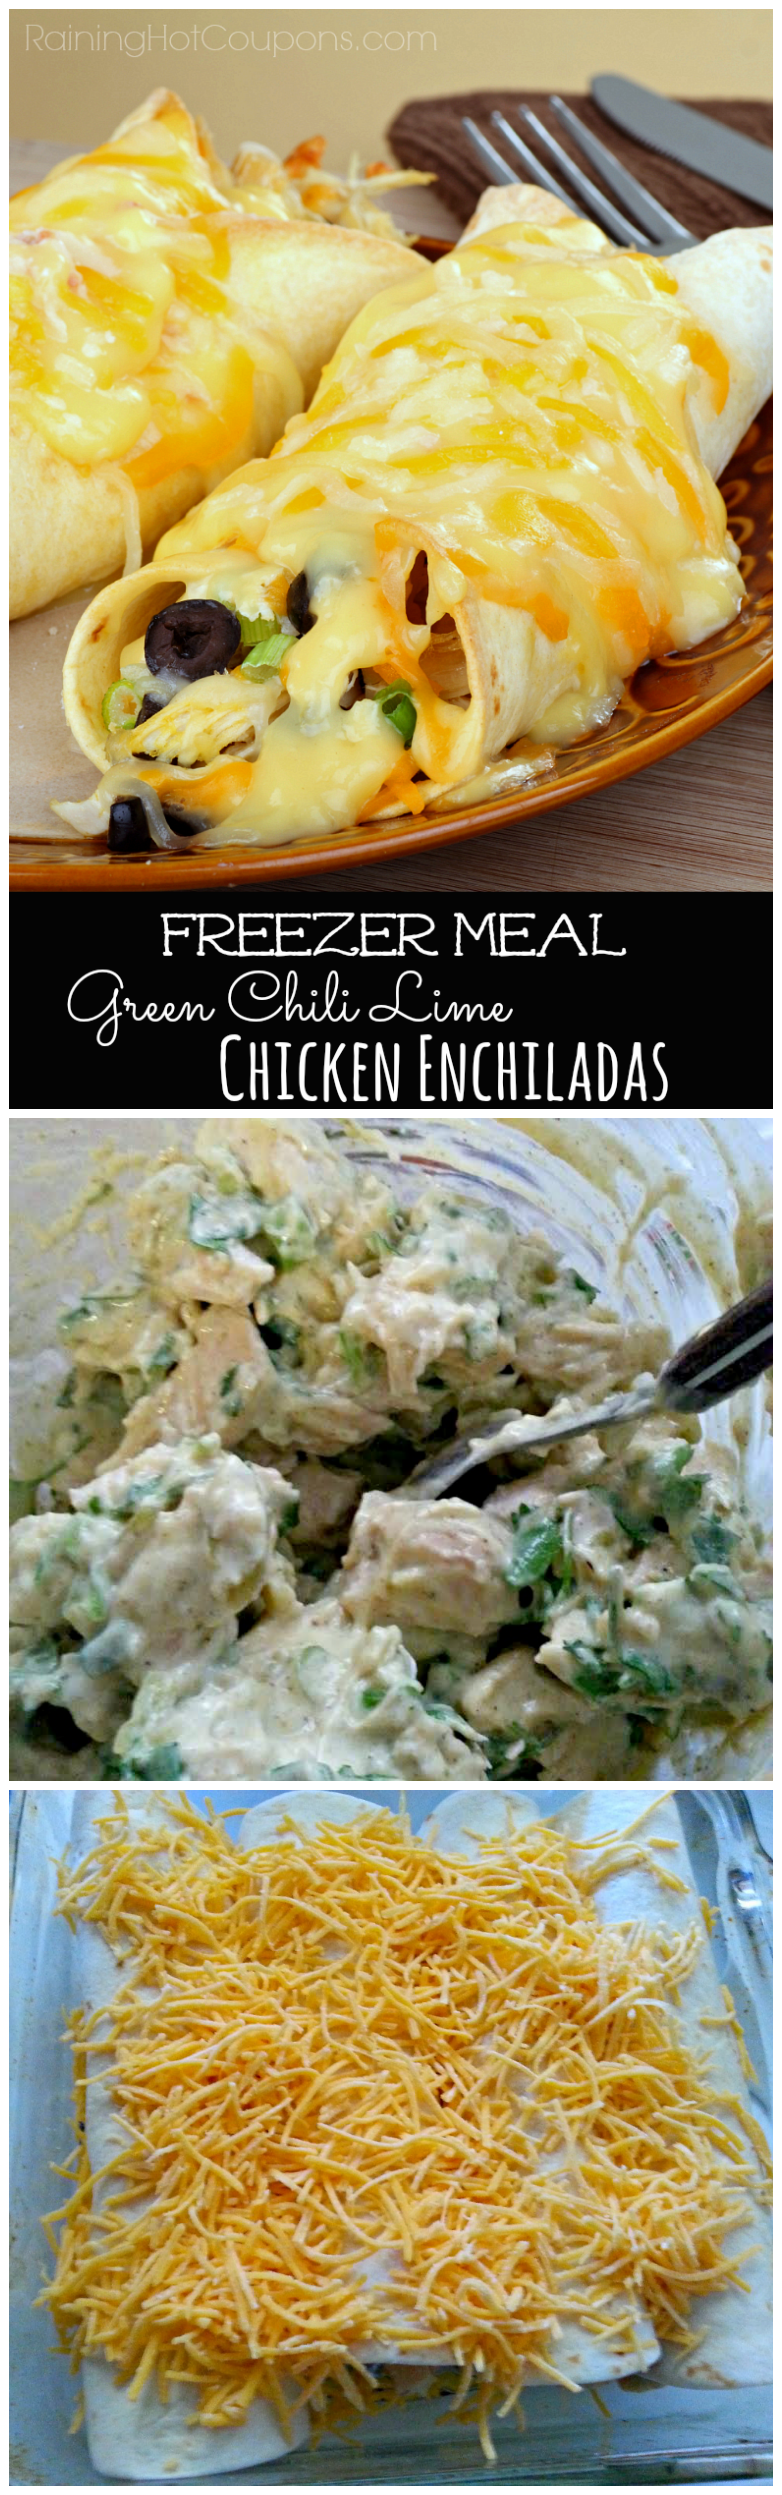 enchiladas1.png1 Green Chili Lime Chicken Enchiladas (Freezer Cooking Meal)